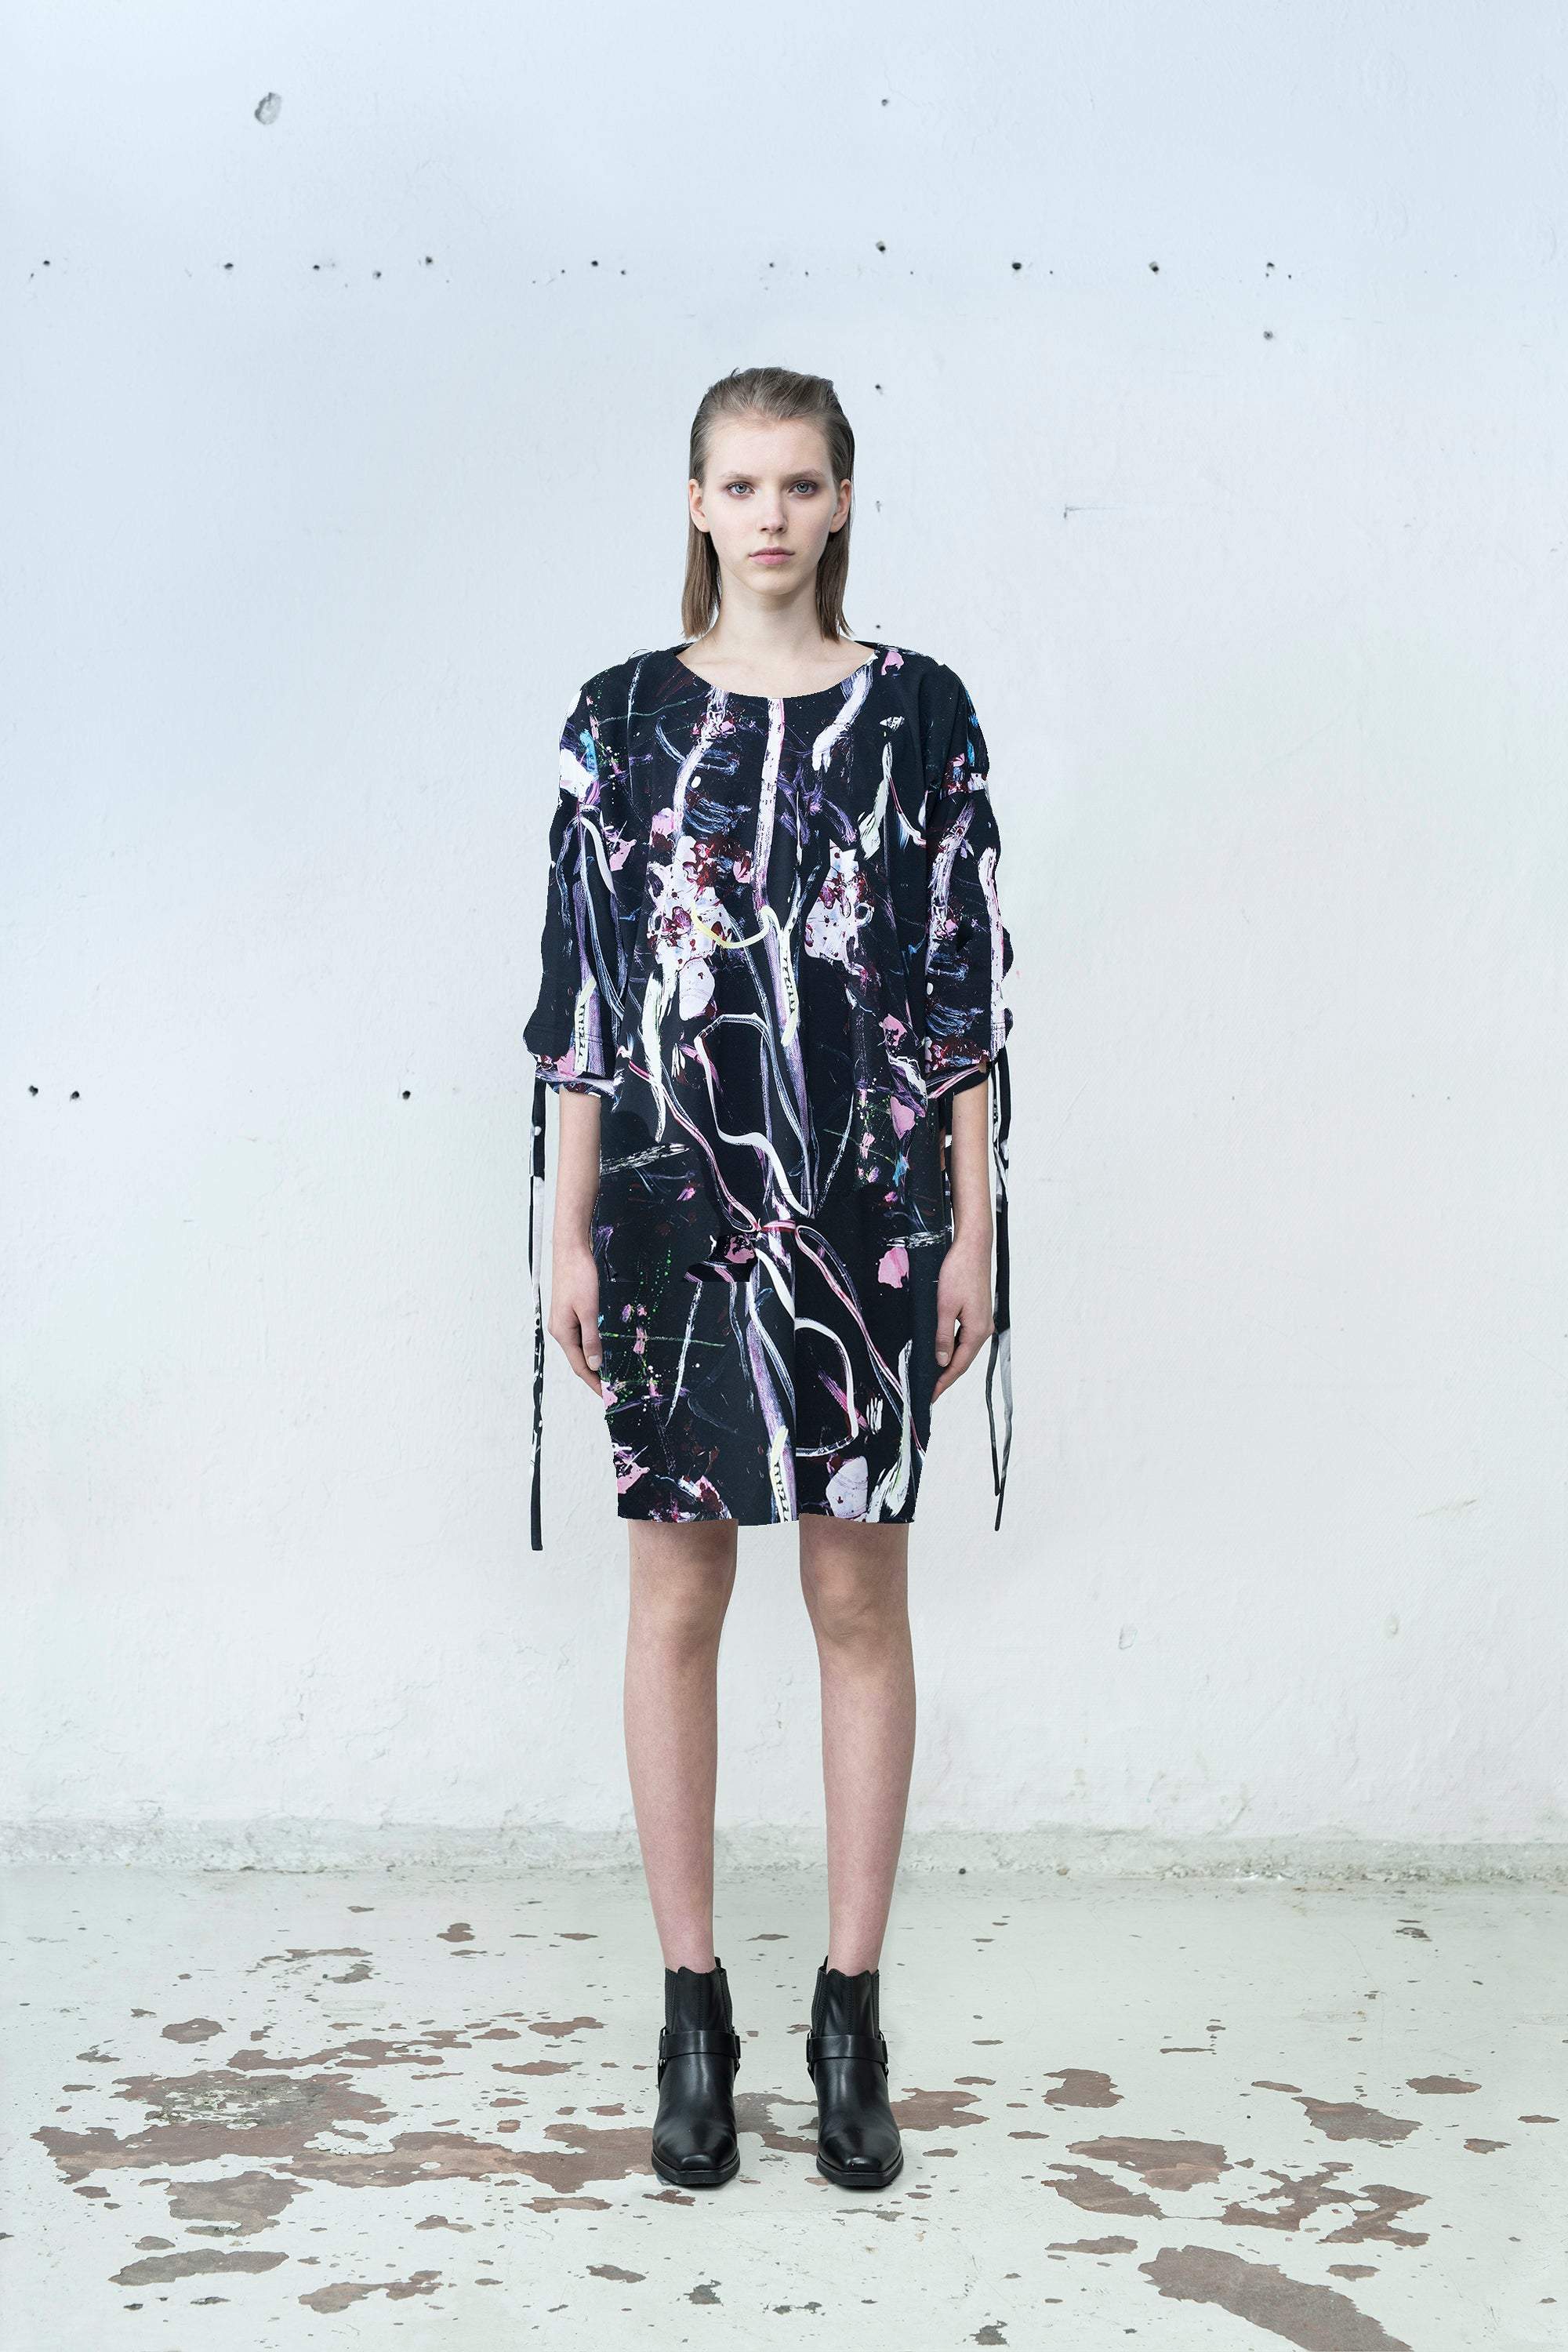 Ville Kylätasku x Mirkka Metsola. Sustainable Braided Tunic Designed in Finland, Made in Estonia.